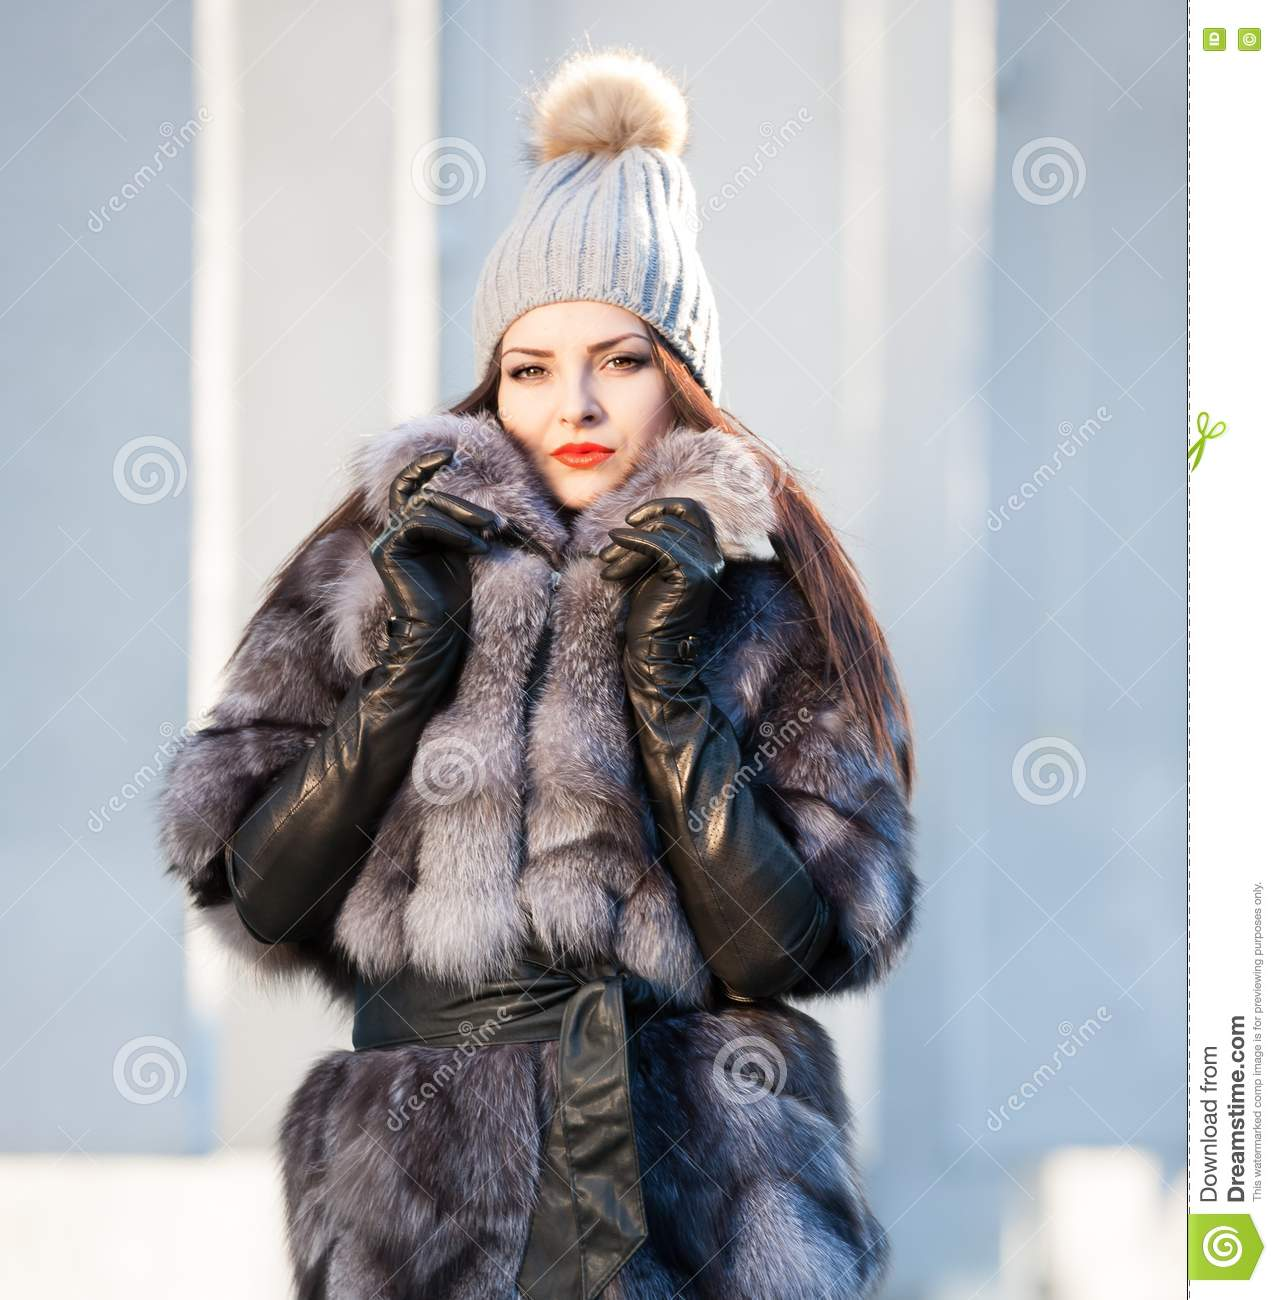 Black leather gloves with fur - Woman Fur Coat And Black Leather Gloves